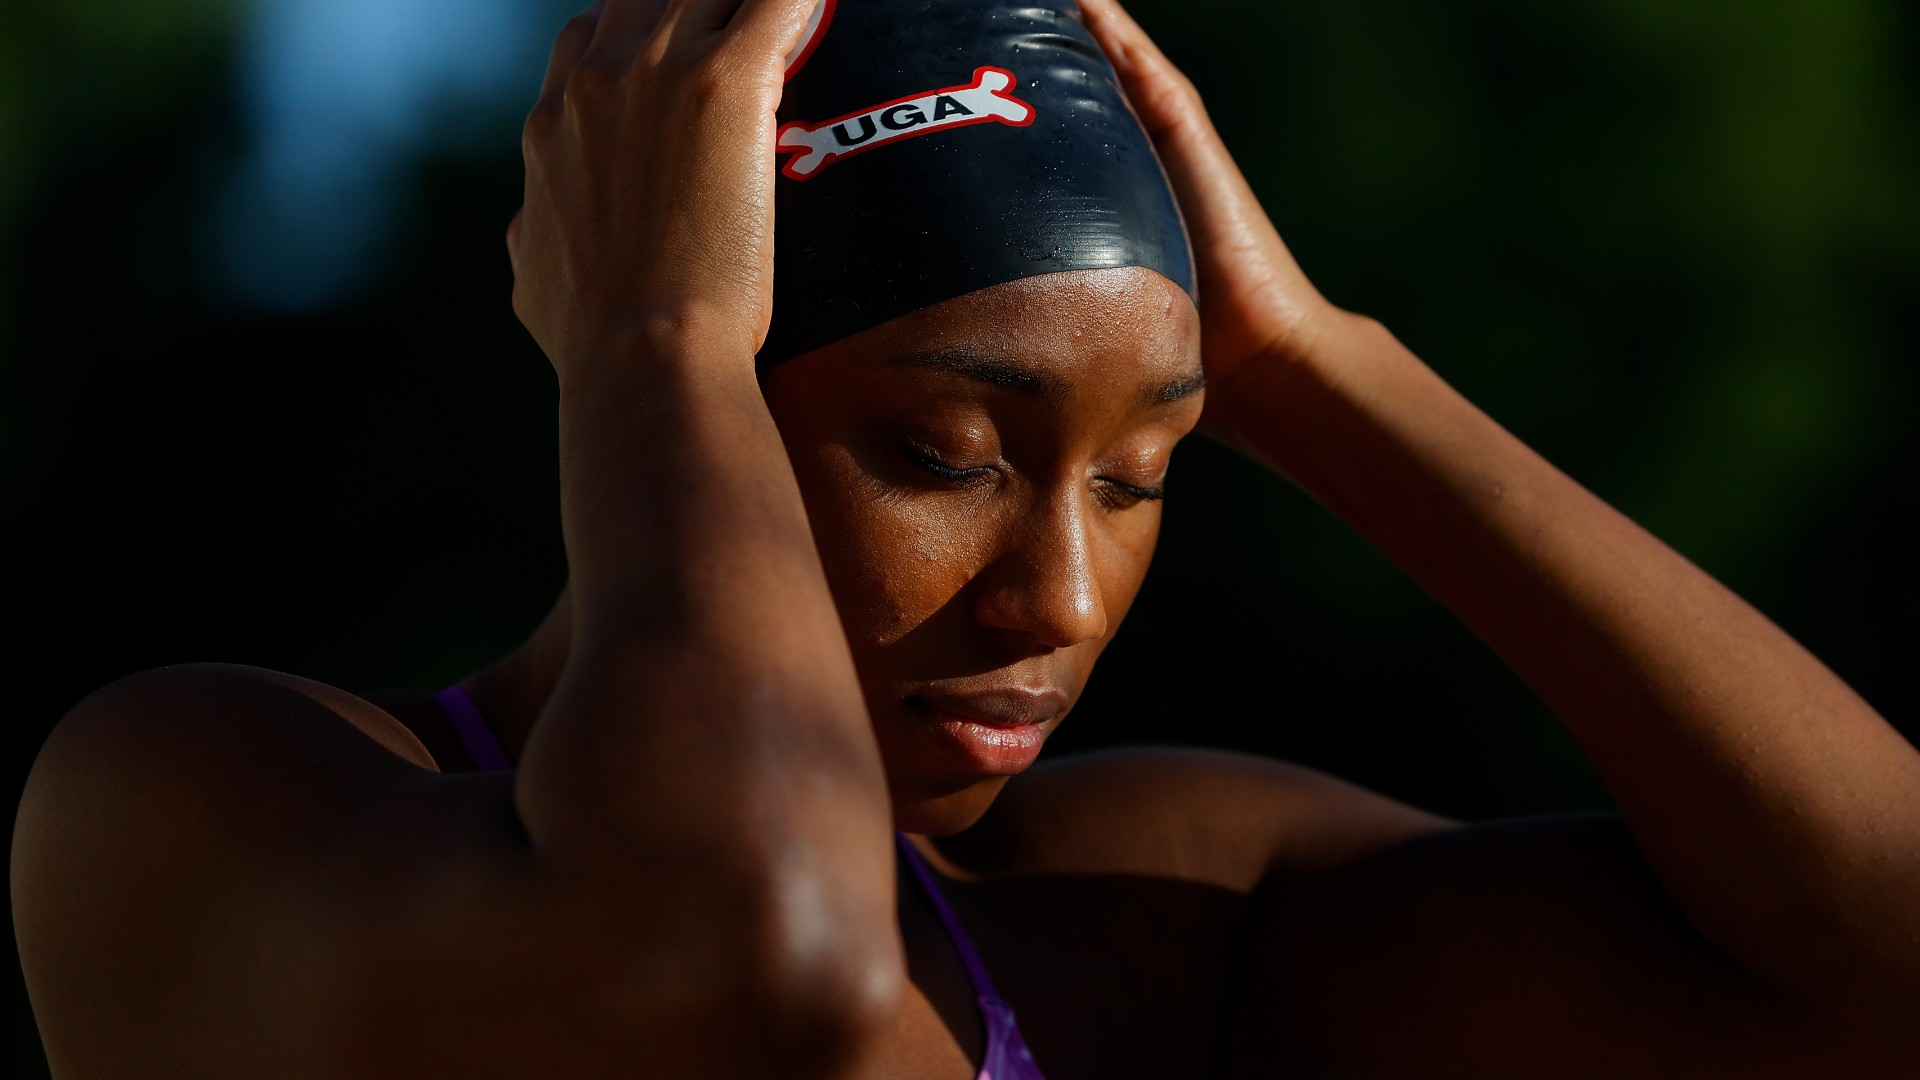 Olympic swimming cap ban: What does the 'Soul Cap' rule mean for black swimmers at the 2021 Games?